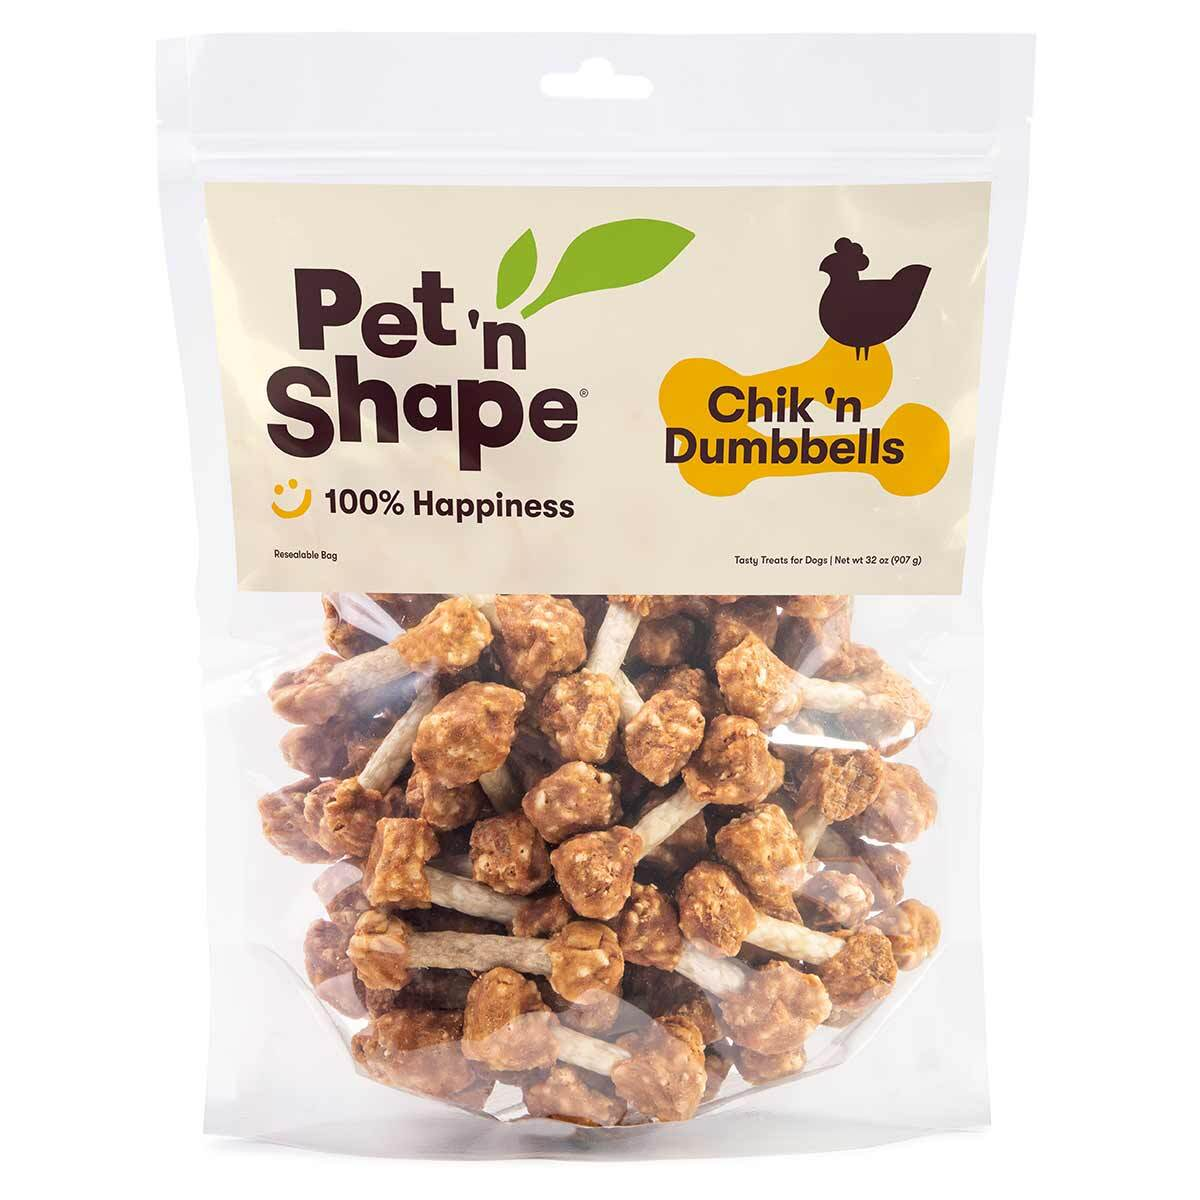 Pet 'n Shape Chik 'n Dumbbells Dog Treats 32 oz